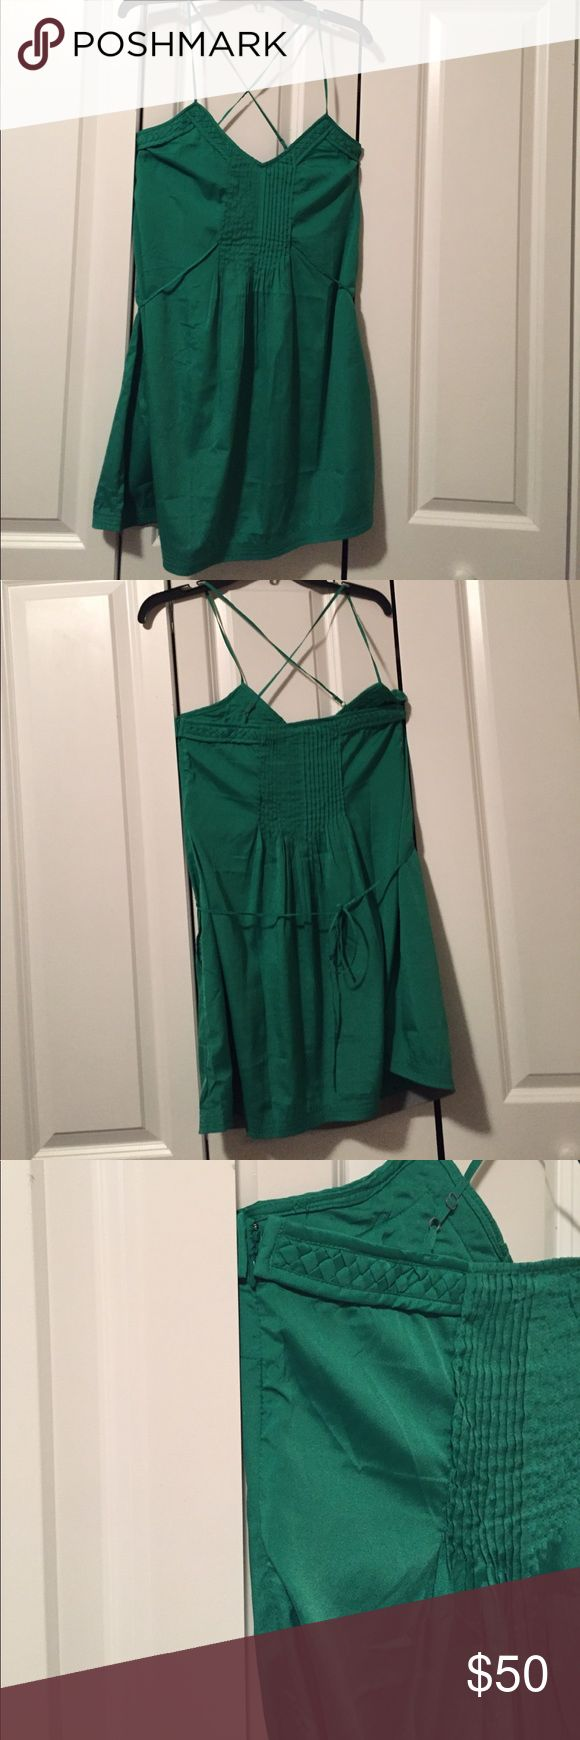 Like new Kelly green dress Like new- maybe worn once or twice. Has the thin straps and in the back they to cross cross. Fits like a babydoll dress because it ties in the back as well. Has side zipper. Originally purchased at urban outfitters. All pictured. Ecote Dresses Mini